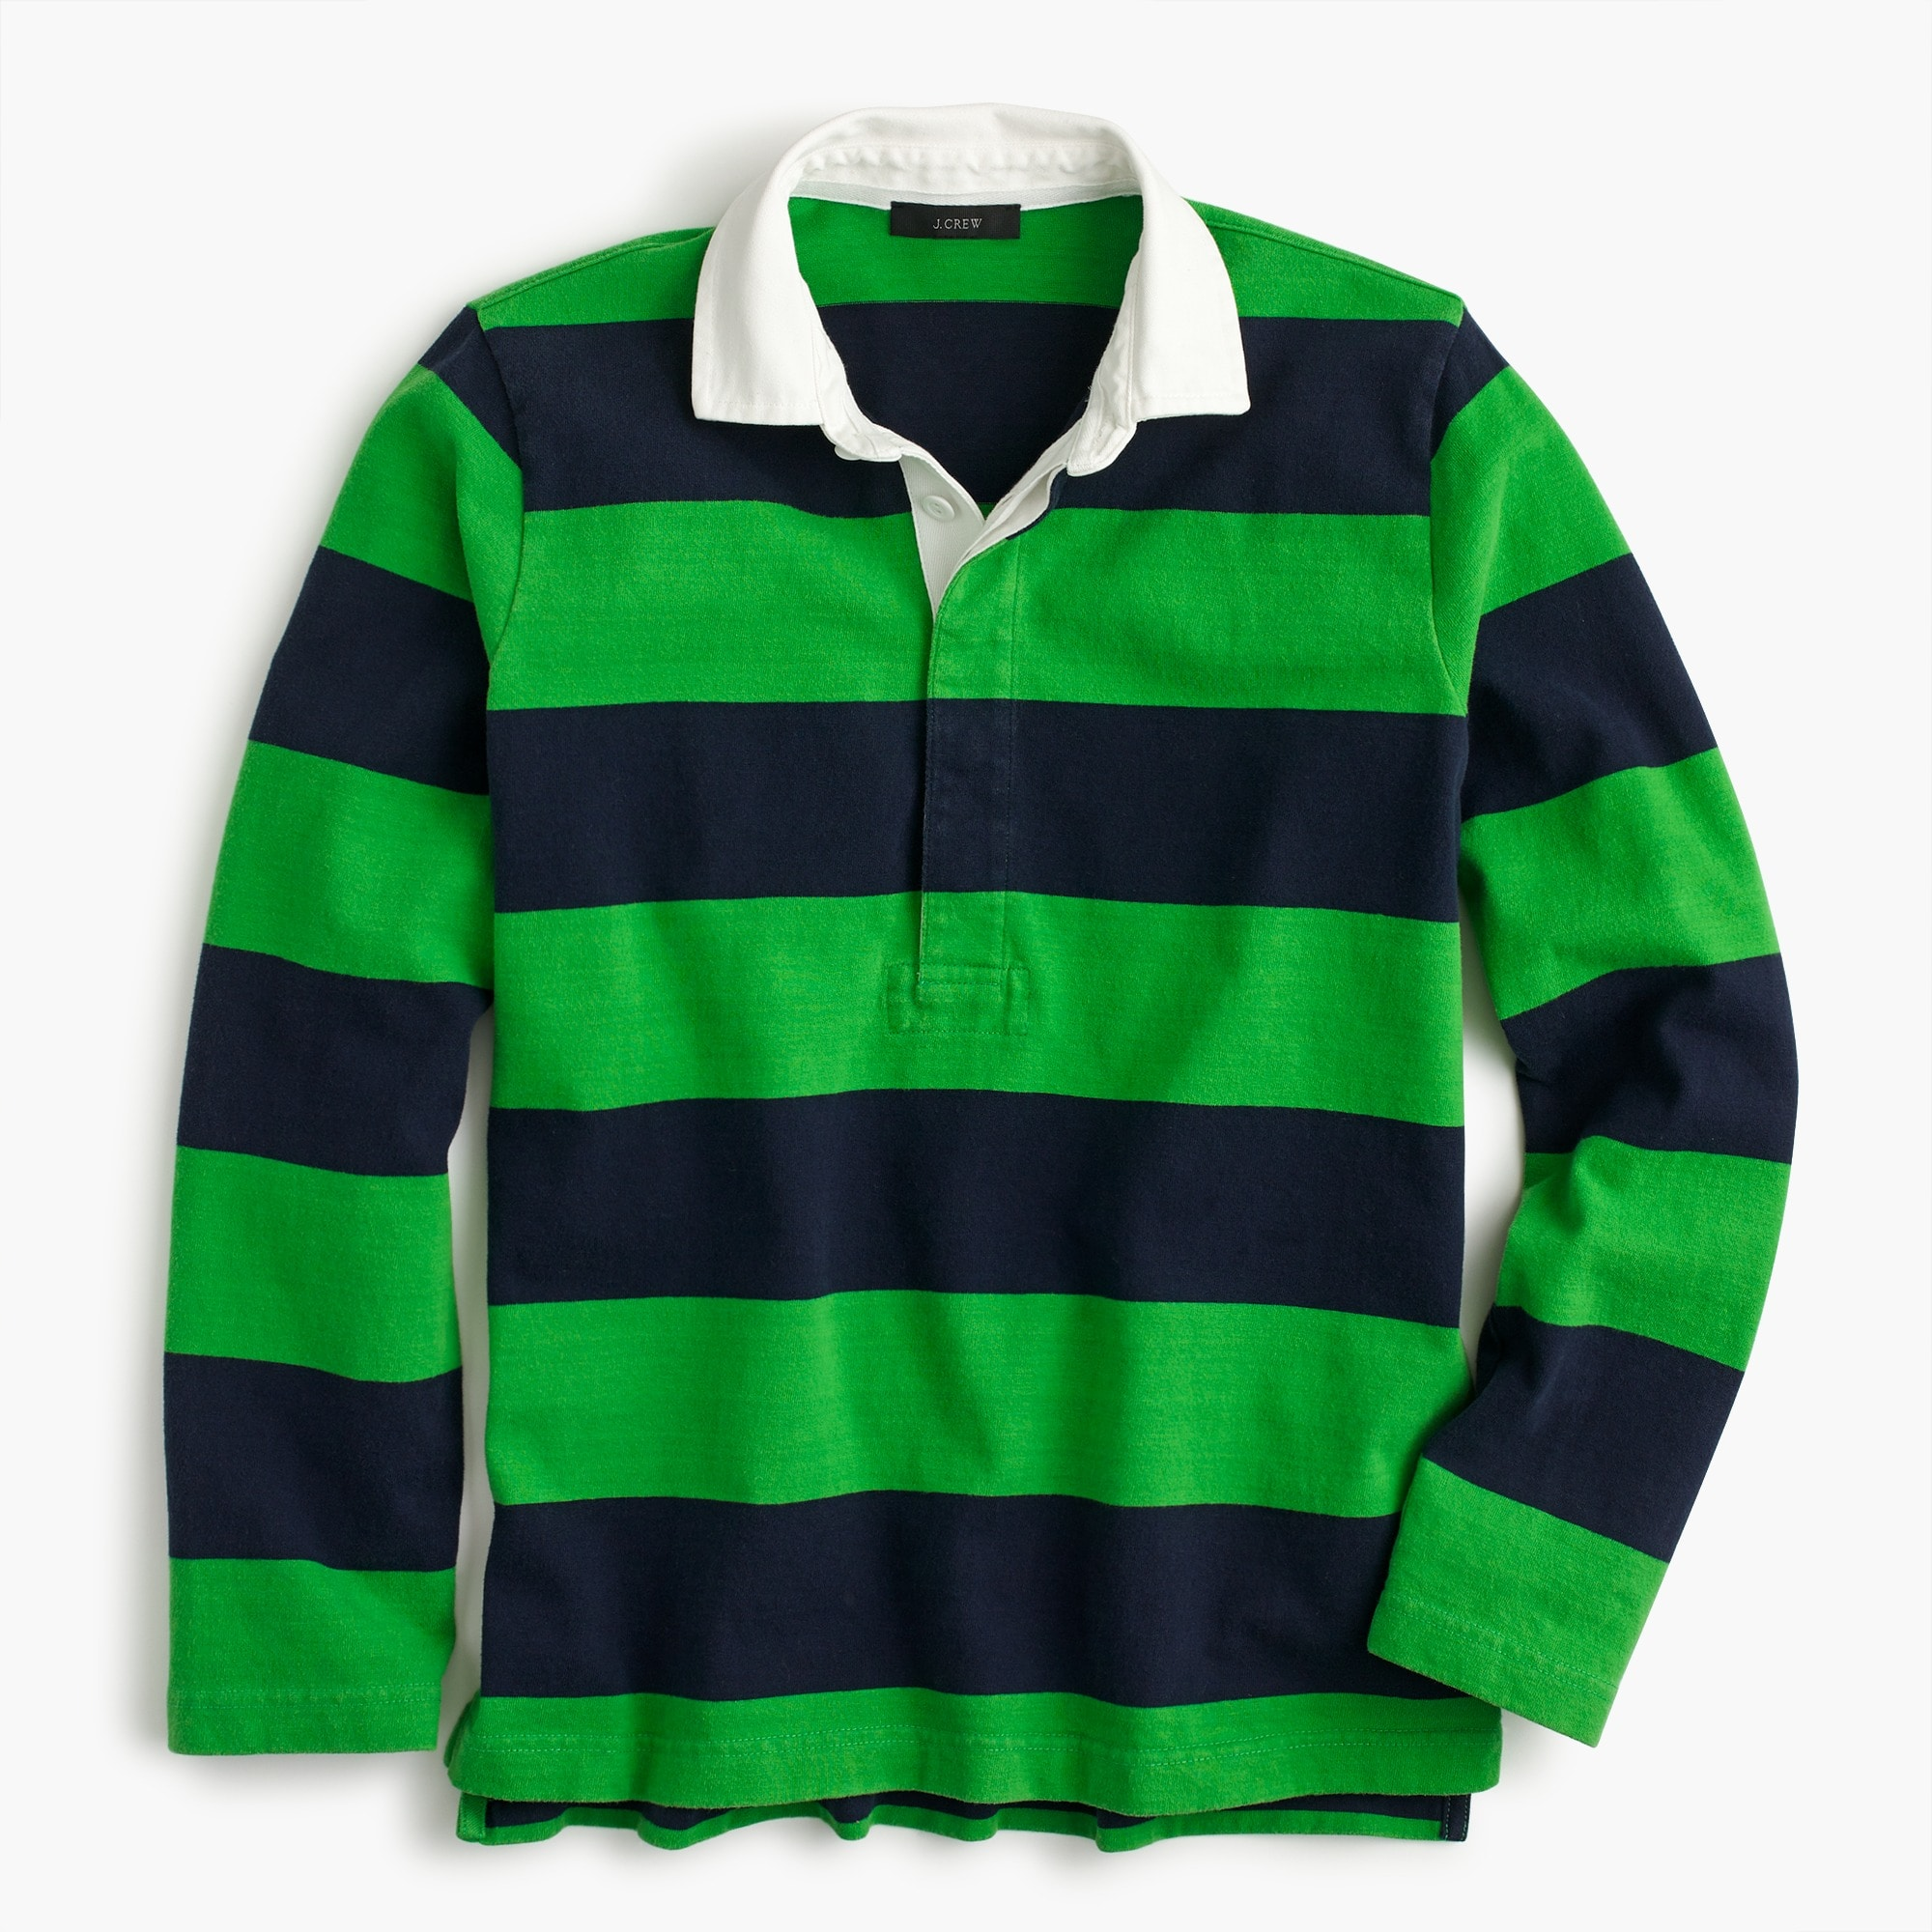 Women's 1984 rugby shirt in stripe women new arrivals c